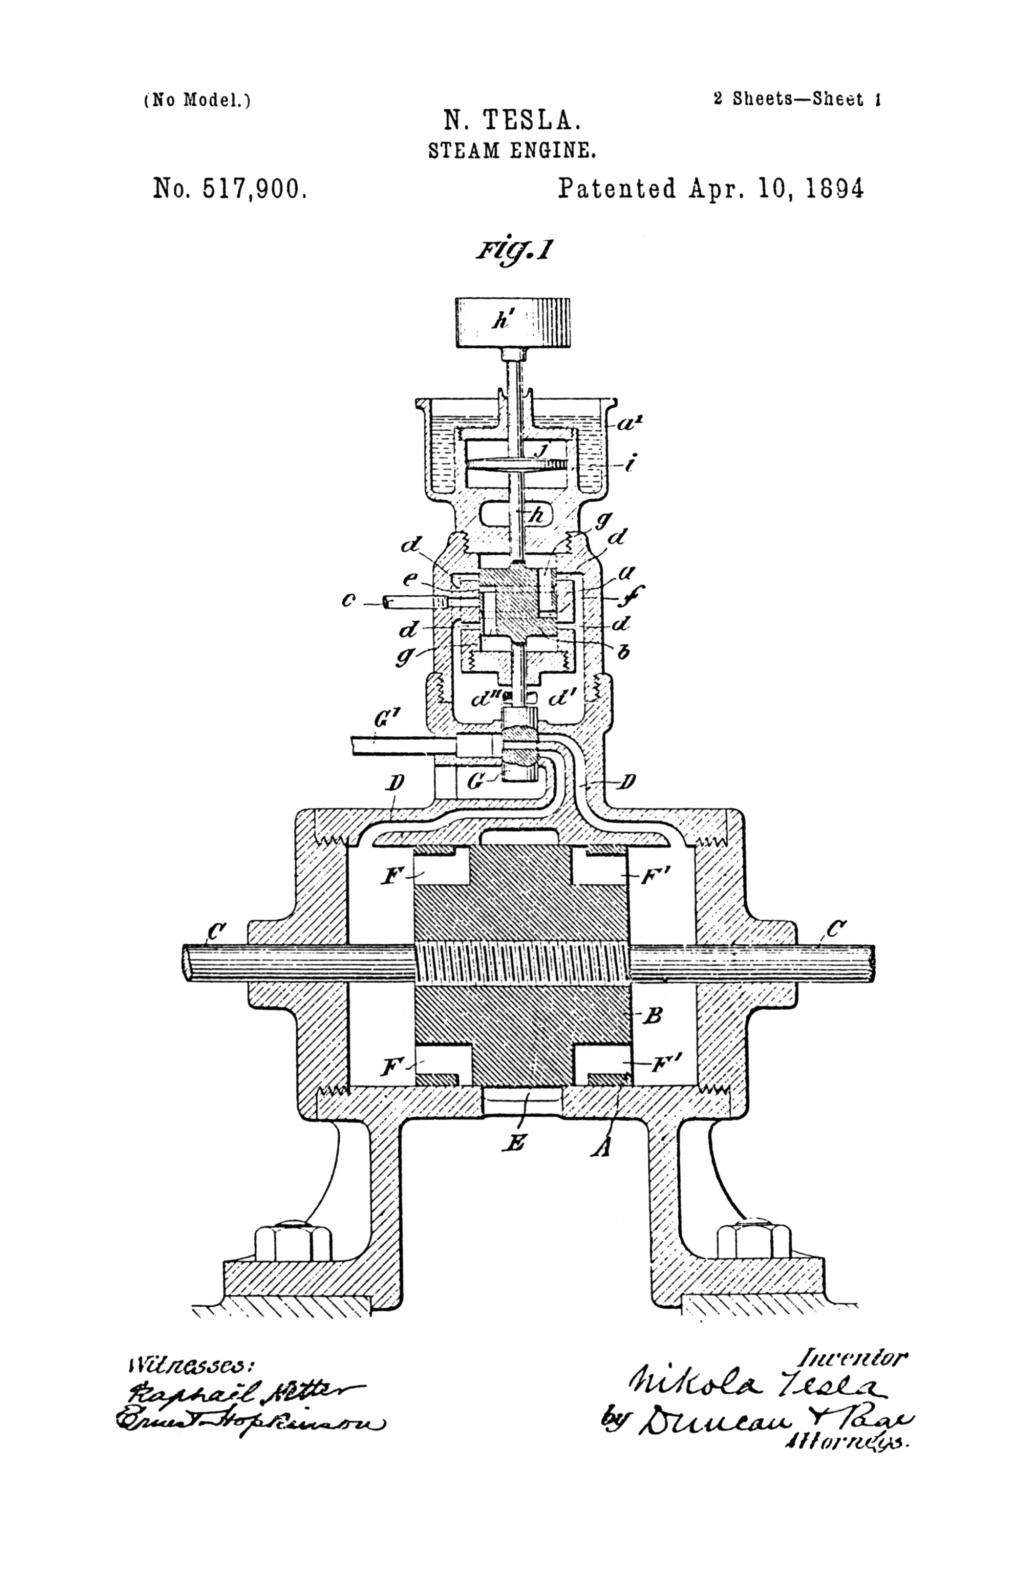 Nikola Tesla U.S. Patent 517,900 - Steam Engine - Image 1